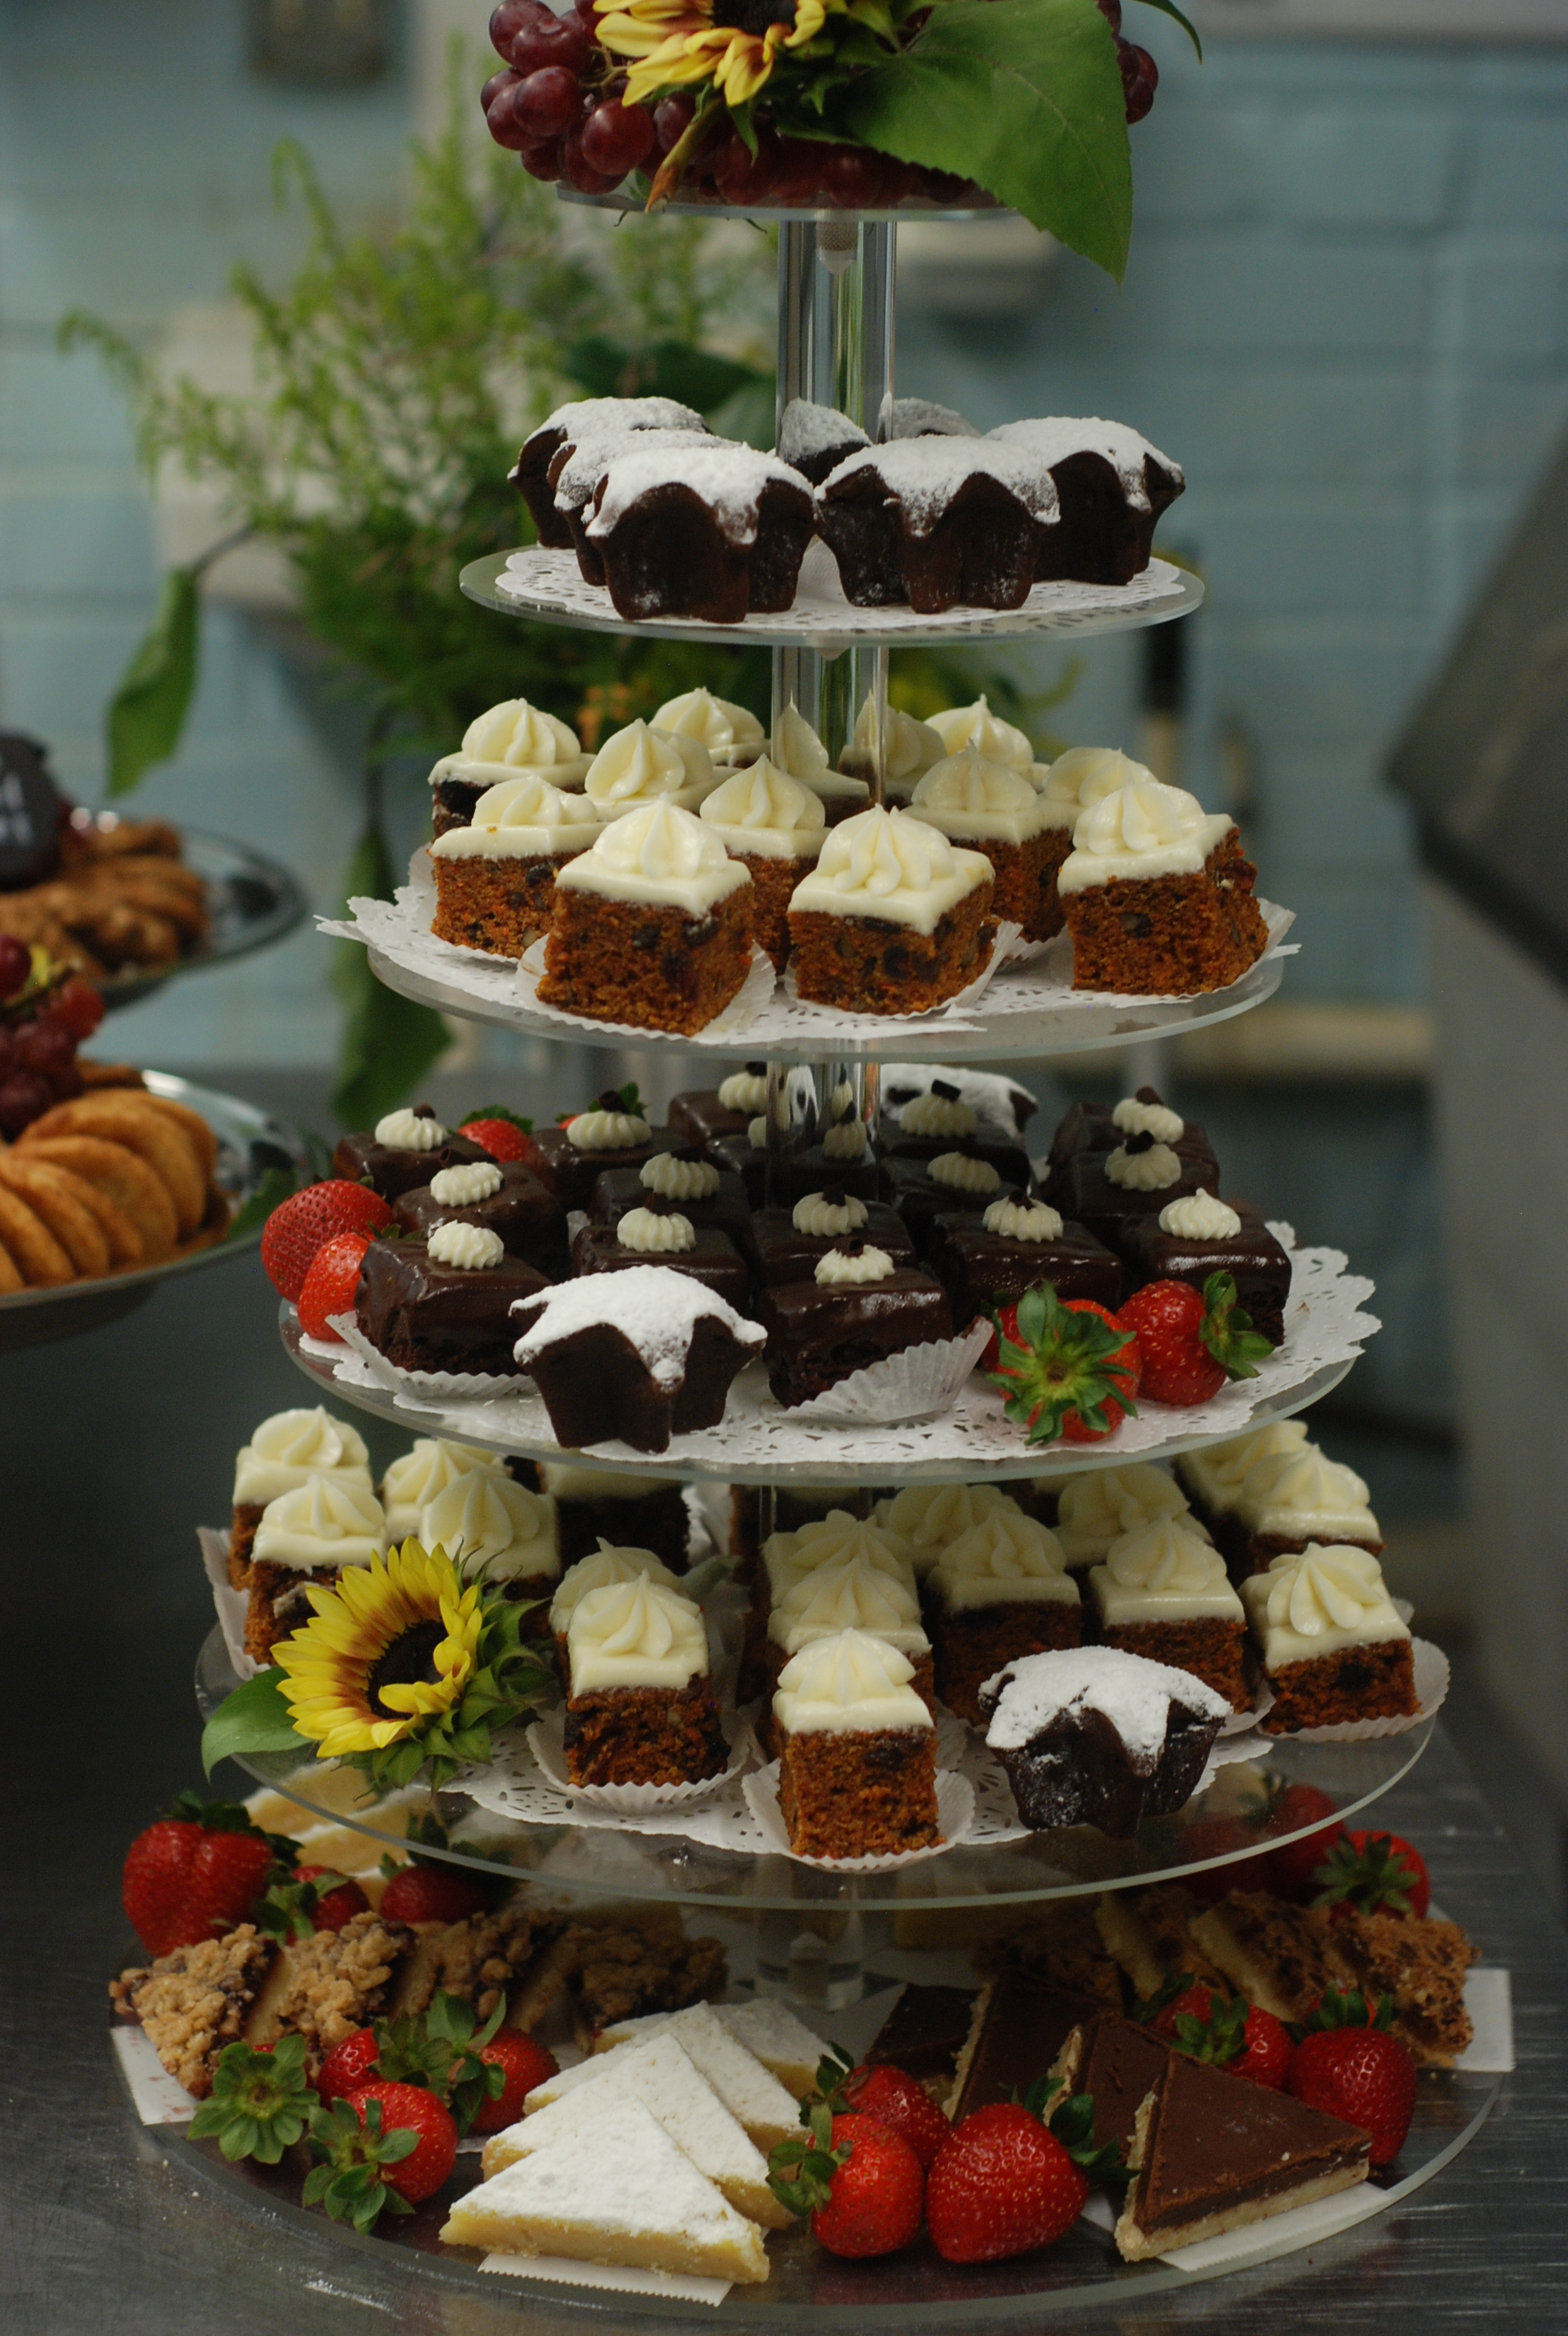 Dessert Tower by Big City Bread Cafe Catering